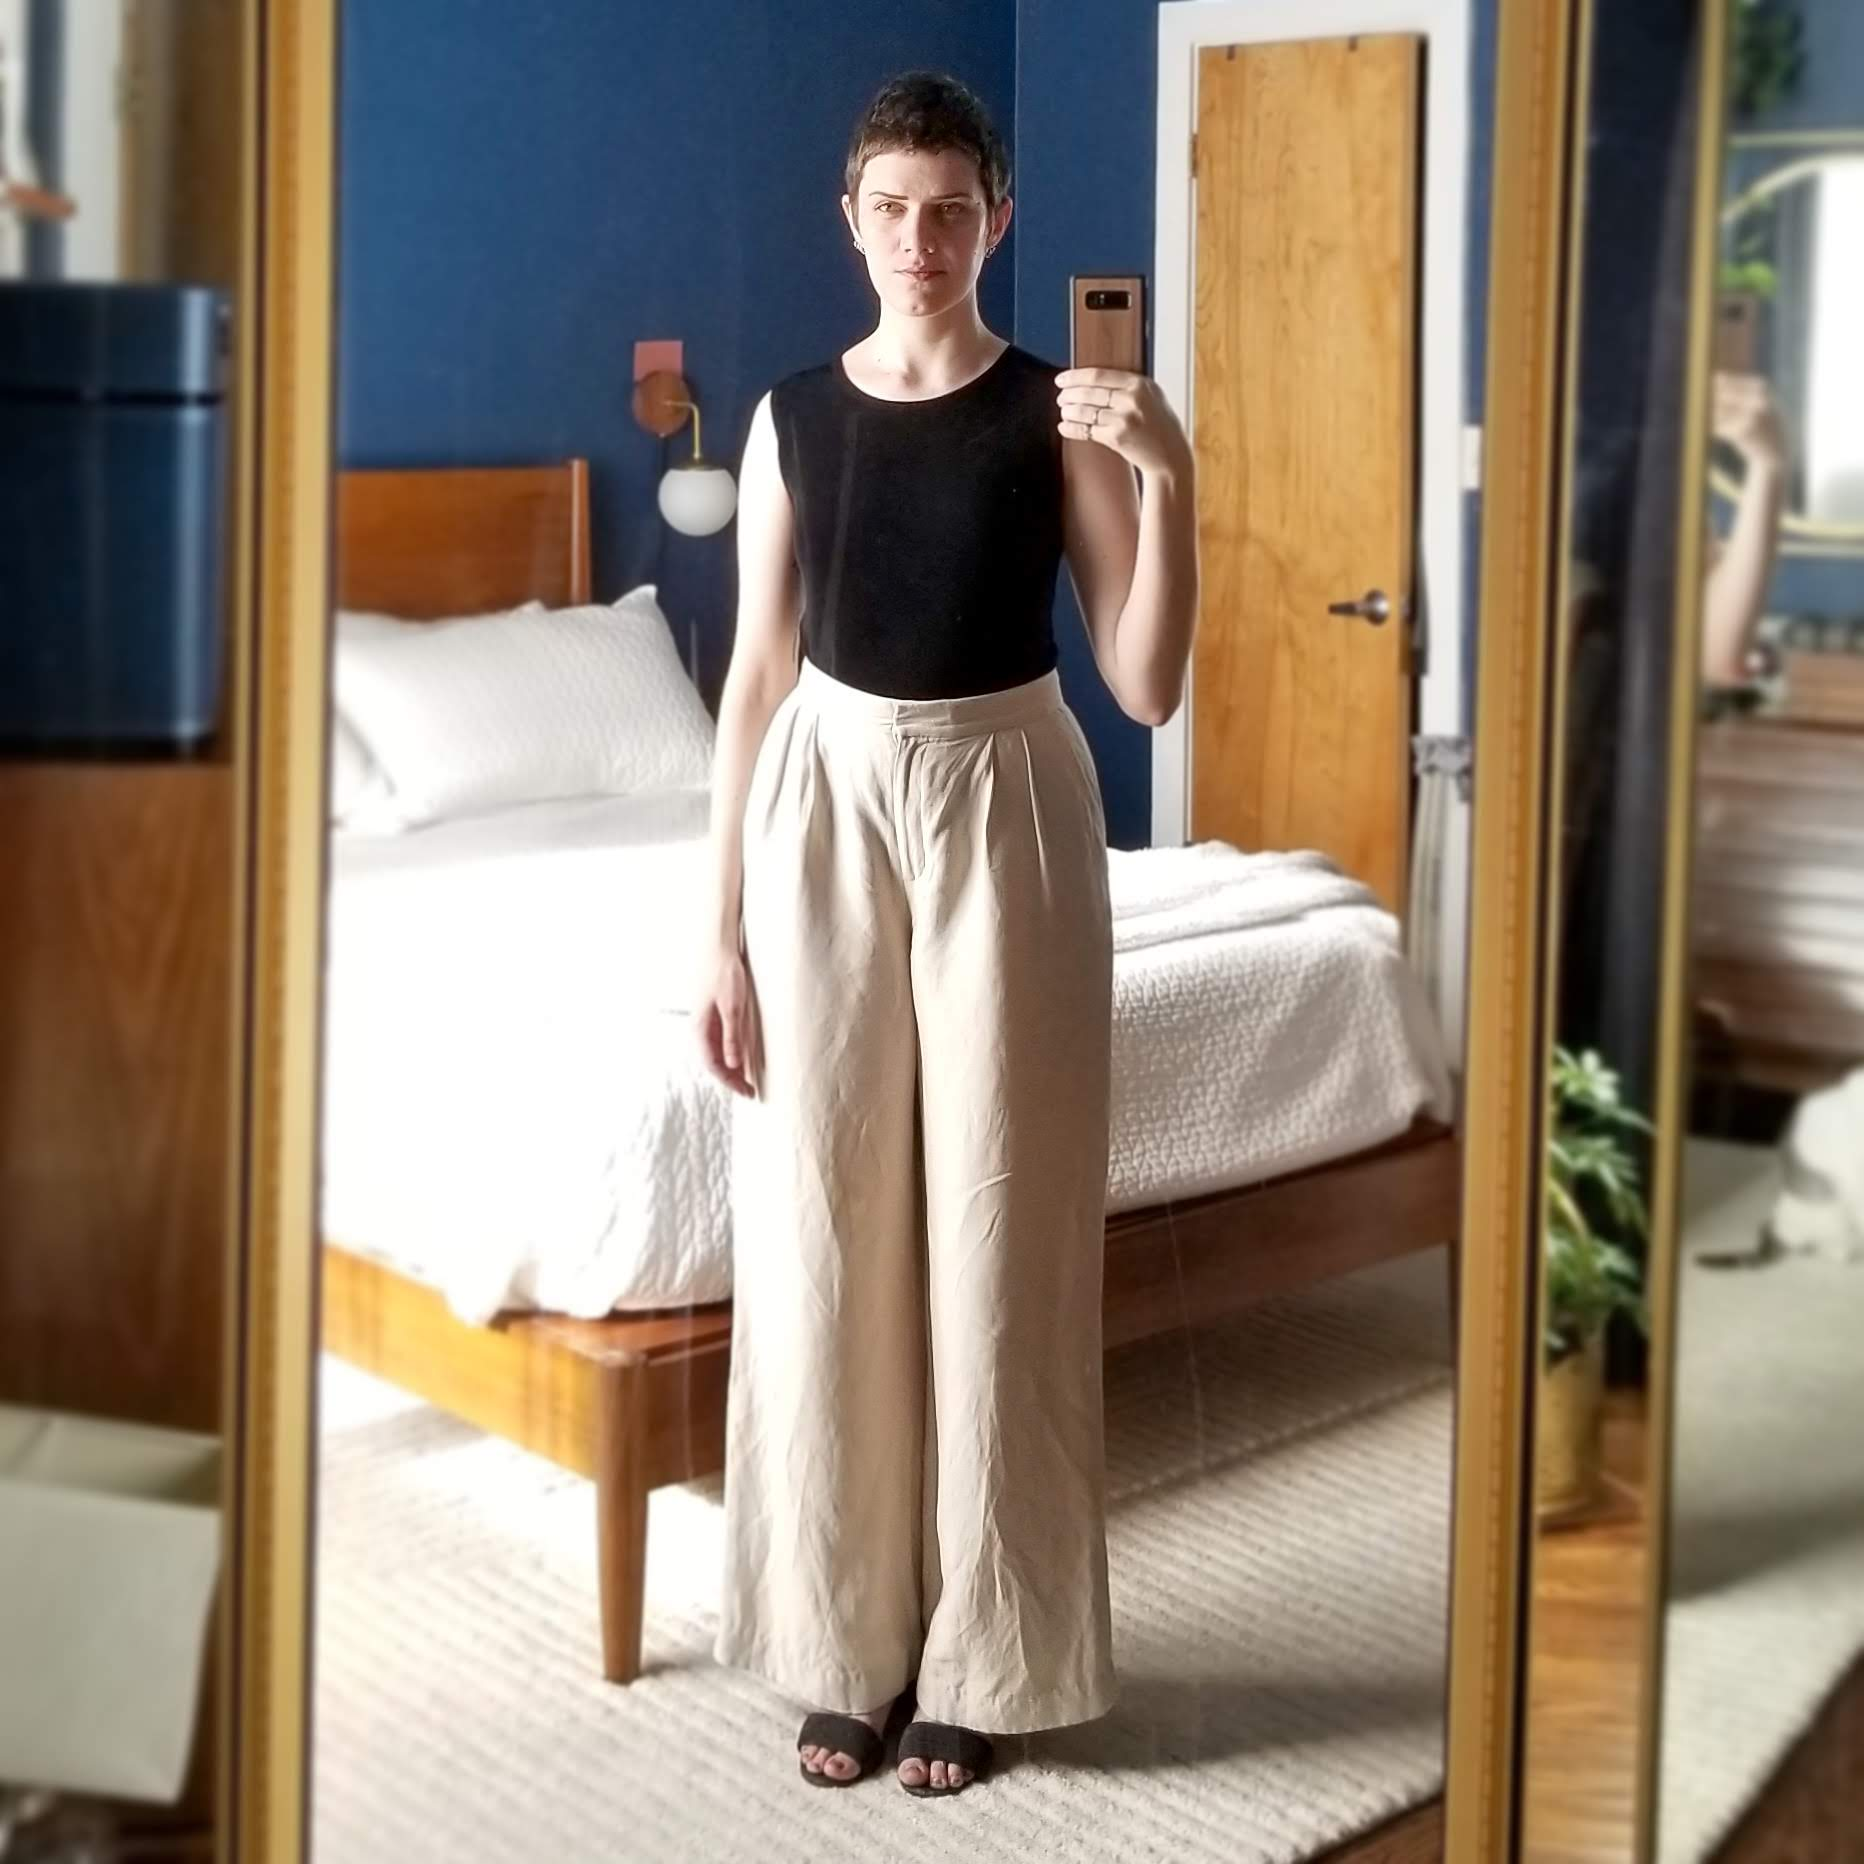 Tuesday  - June 26, 2018Went a little polished today with my inky black sleeveless top and linen-blend trousers from Ann Taylor. I always get compliments on these pants! They've been hemmed so I can wear them with flats, although I have on low heels here.